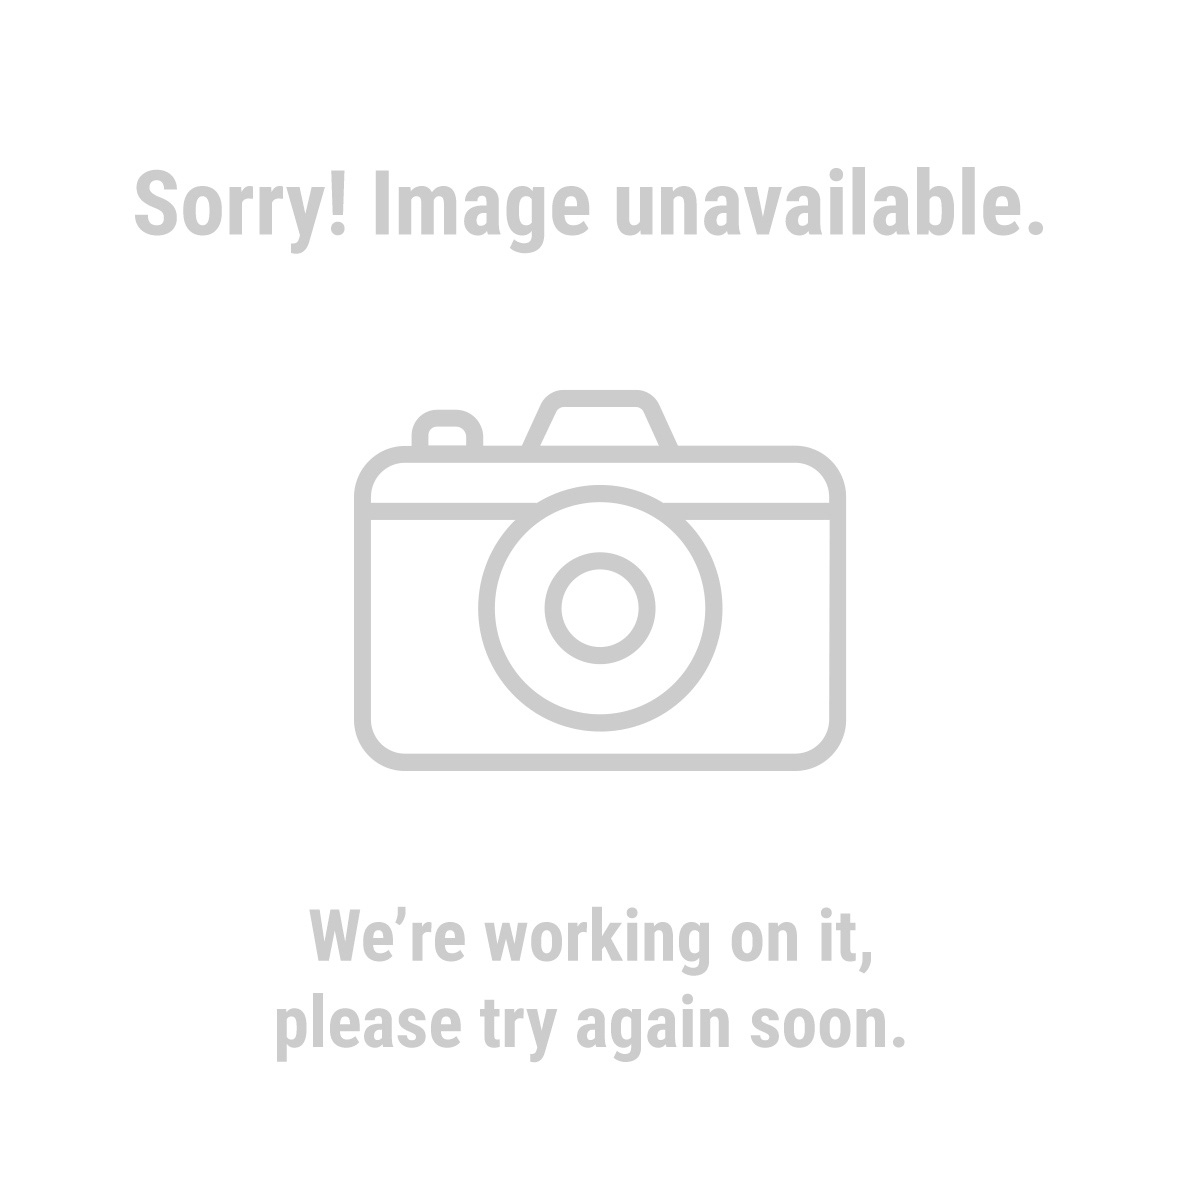 HARDY 90909 Coated Rubber Grip Gloves, Medium